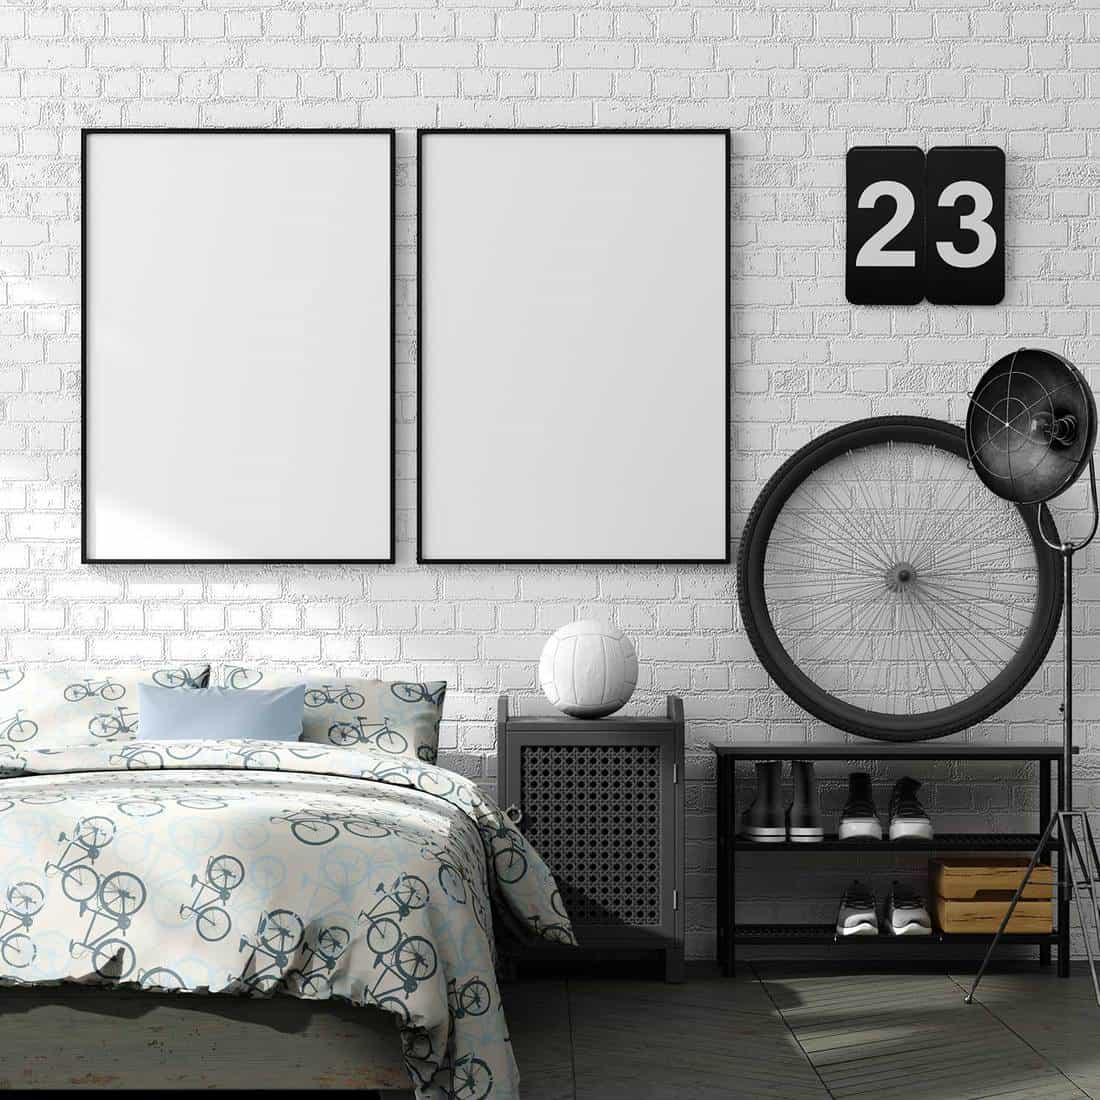 Modern bedroom with brick wall and blank poster